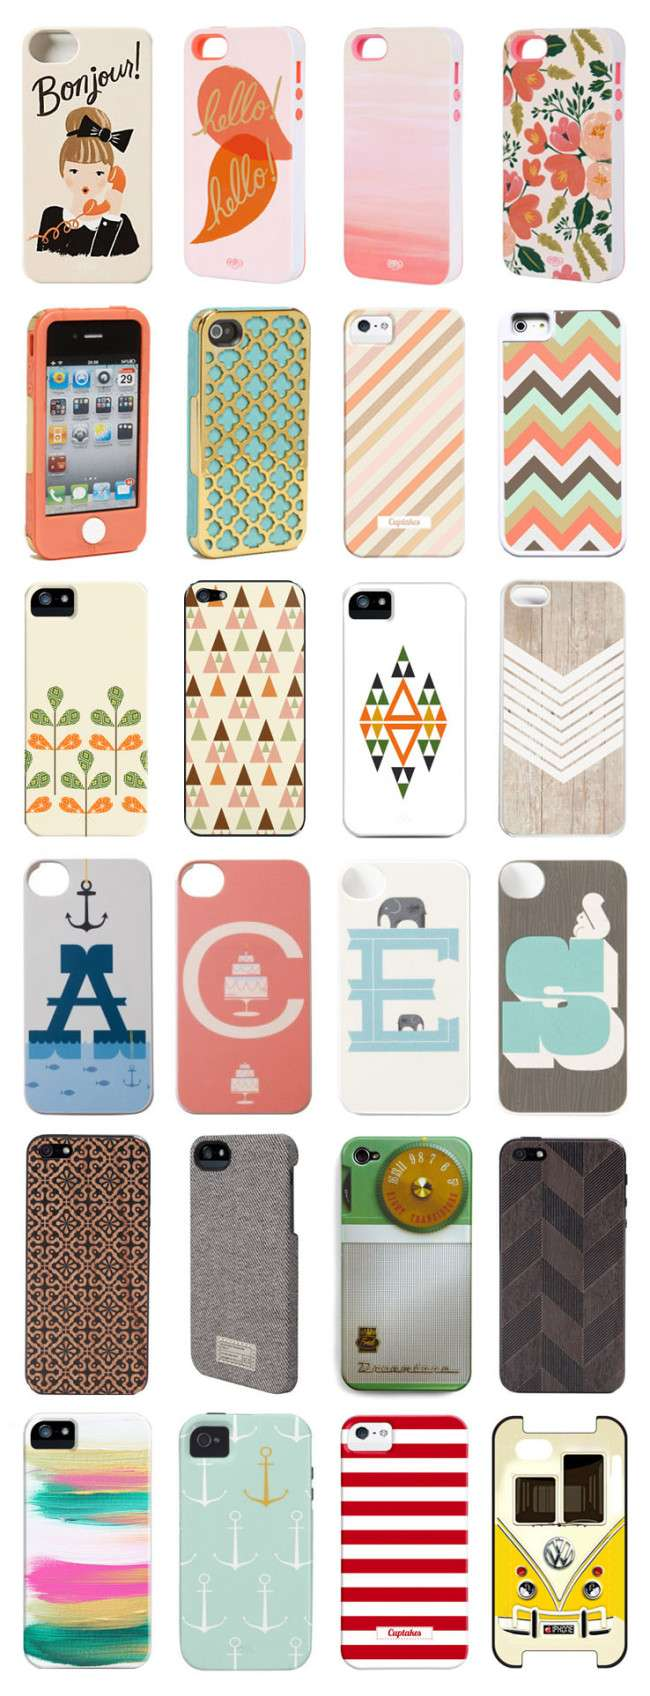 rchristine com accessories technology iphone5 iphonecase ipodcase iphonecover iphoneskin anthropologie clarenicolson riflepaperco cuptakes society6 Latest iPhone Covers Of 2013